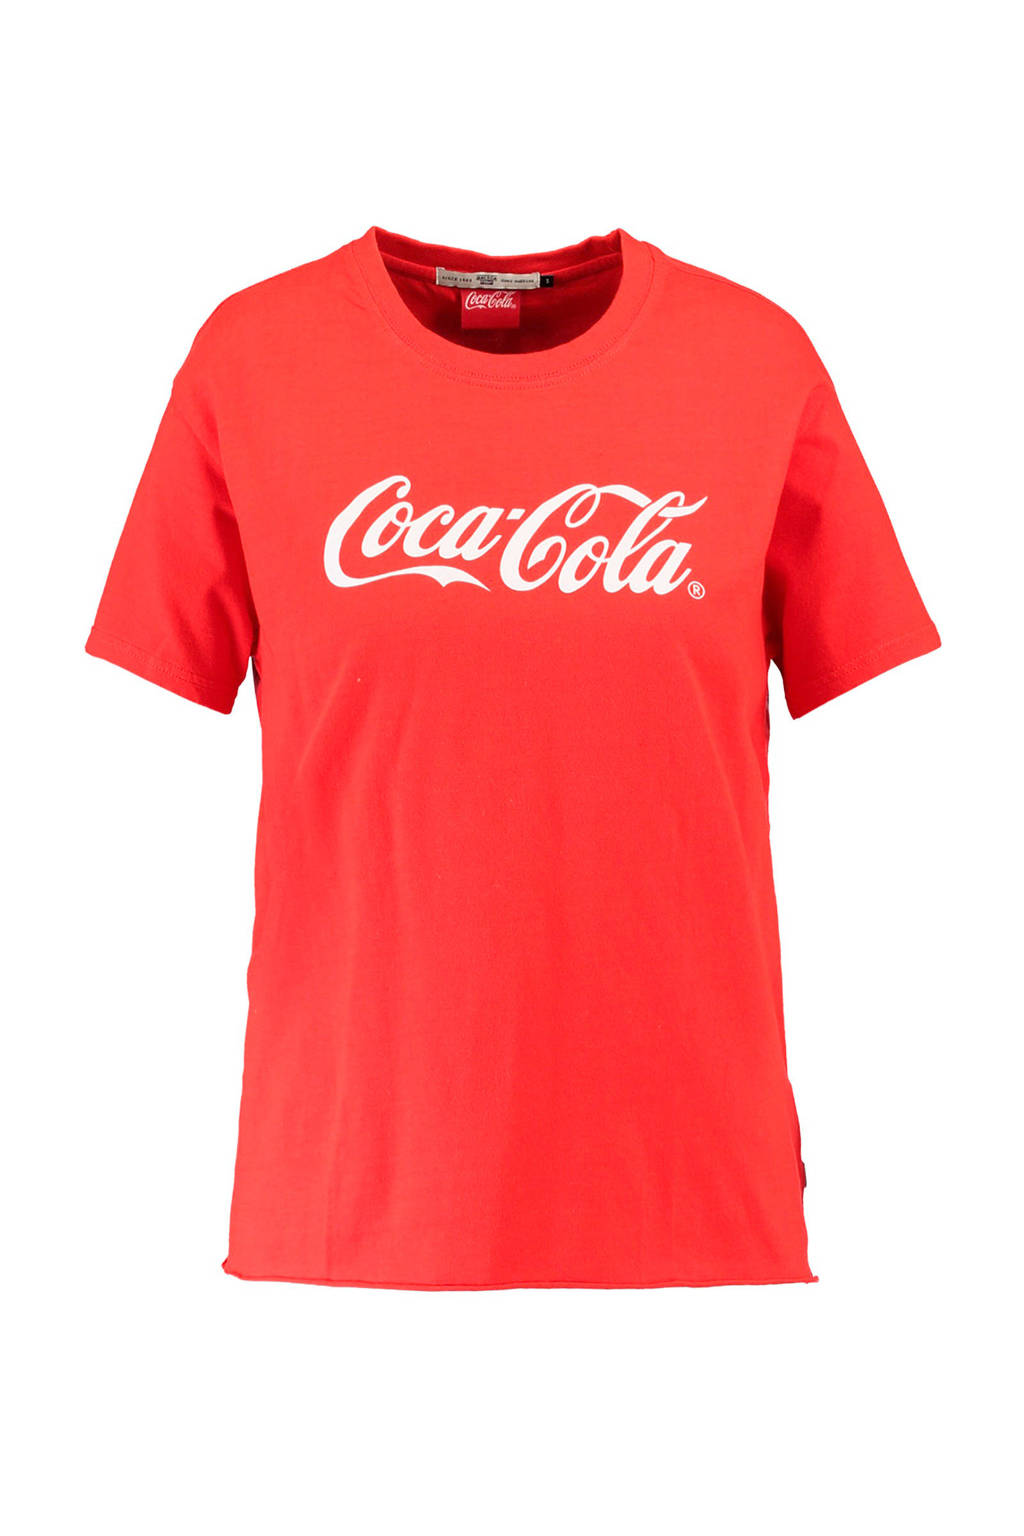 America Today Coca Cola T-shirt rood, Rood